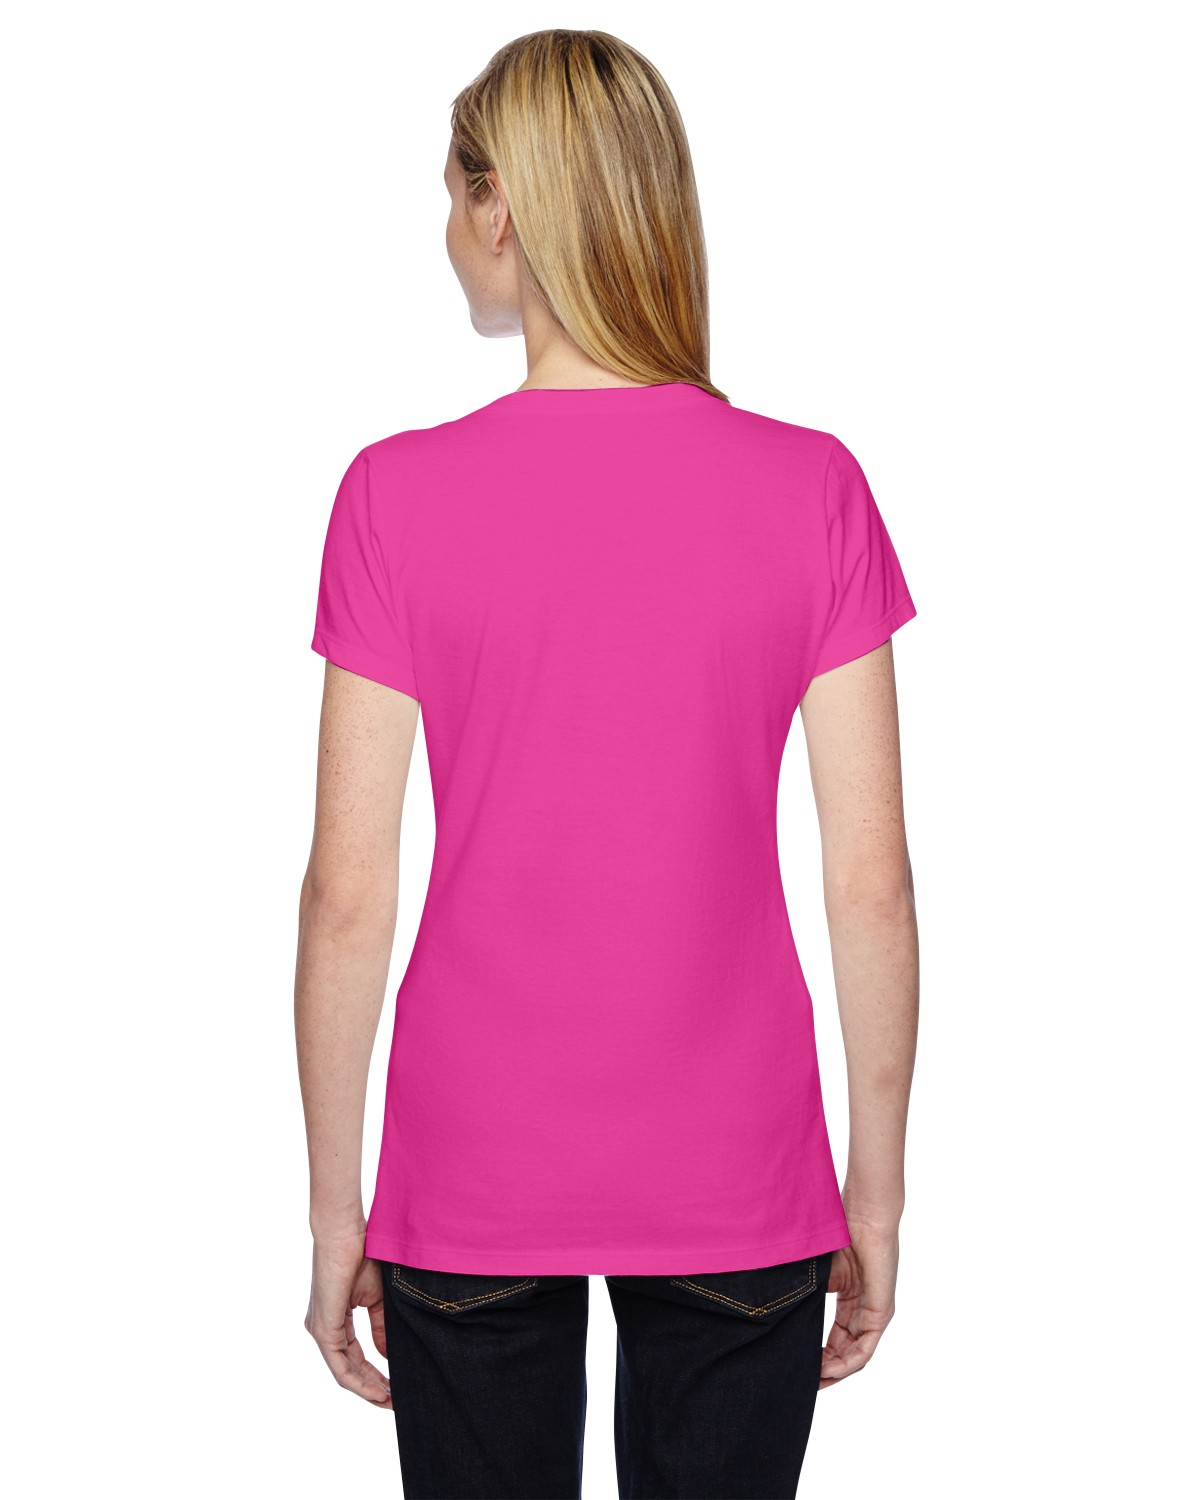 SFJVR Fruit of the Loom CYBER PINK